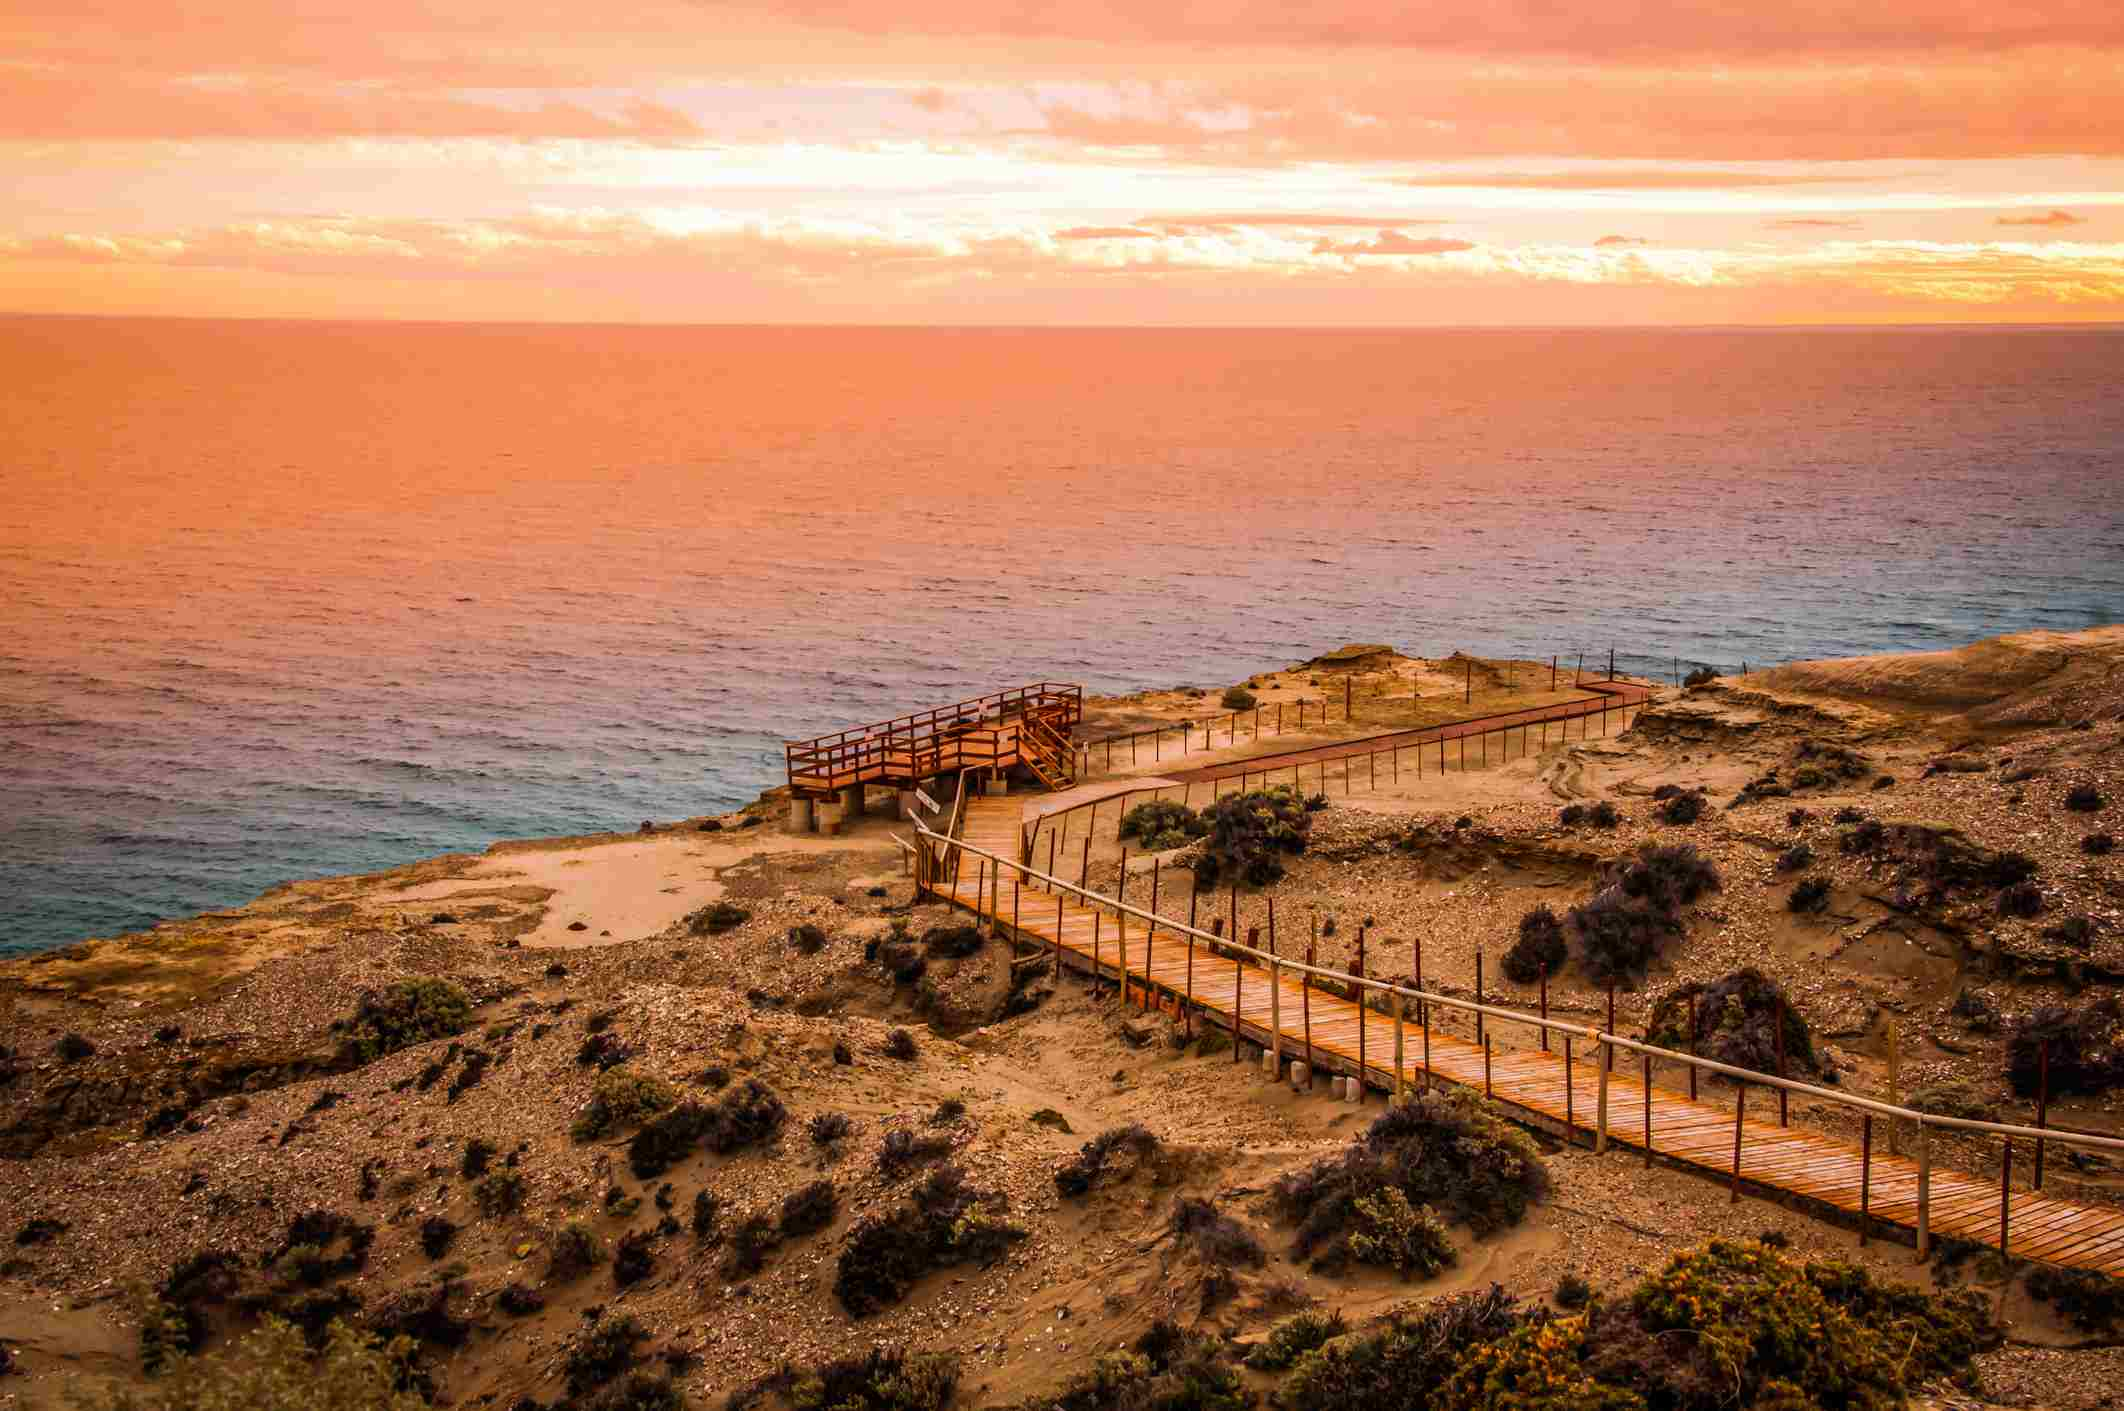 View Of Sea Against Sky During Sunset, Puerto Madryn, Argentina